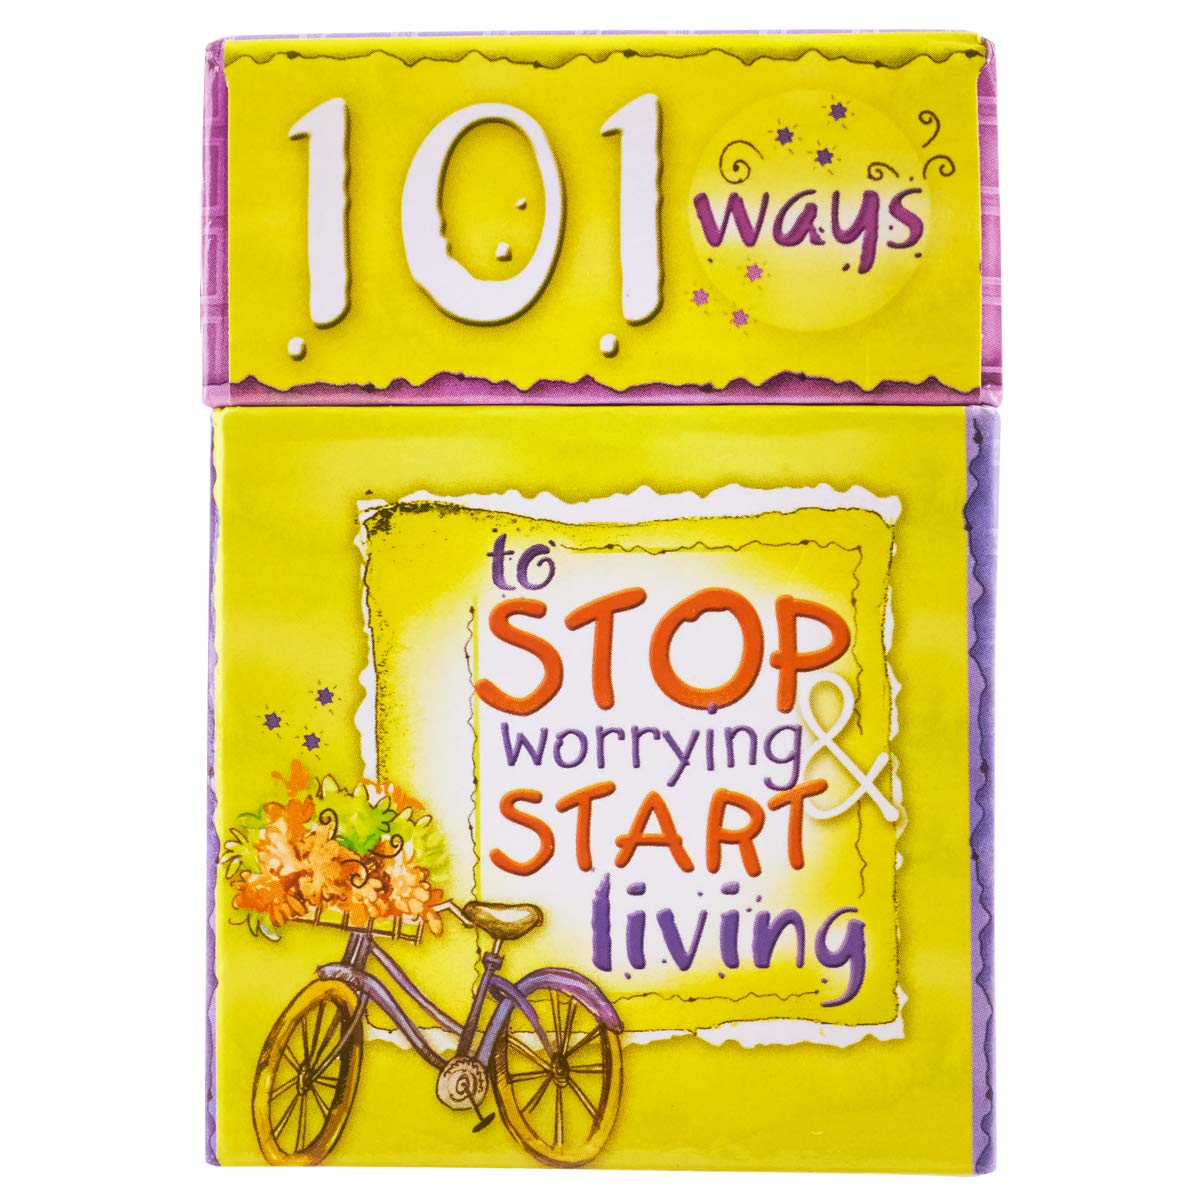 101 Ways to Stop Worrying & Start Living Cards - A Box of Blessings:  Christian Art Gfits: 6006937062863: Amazon.com: Books